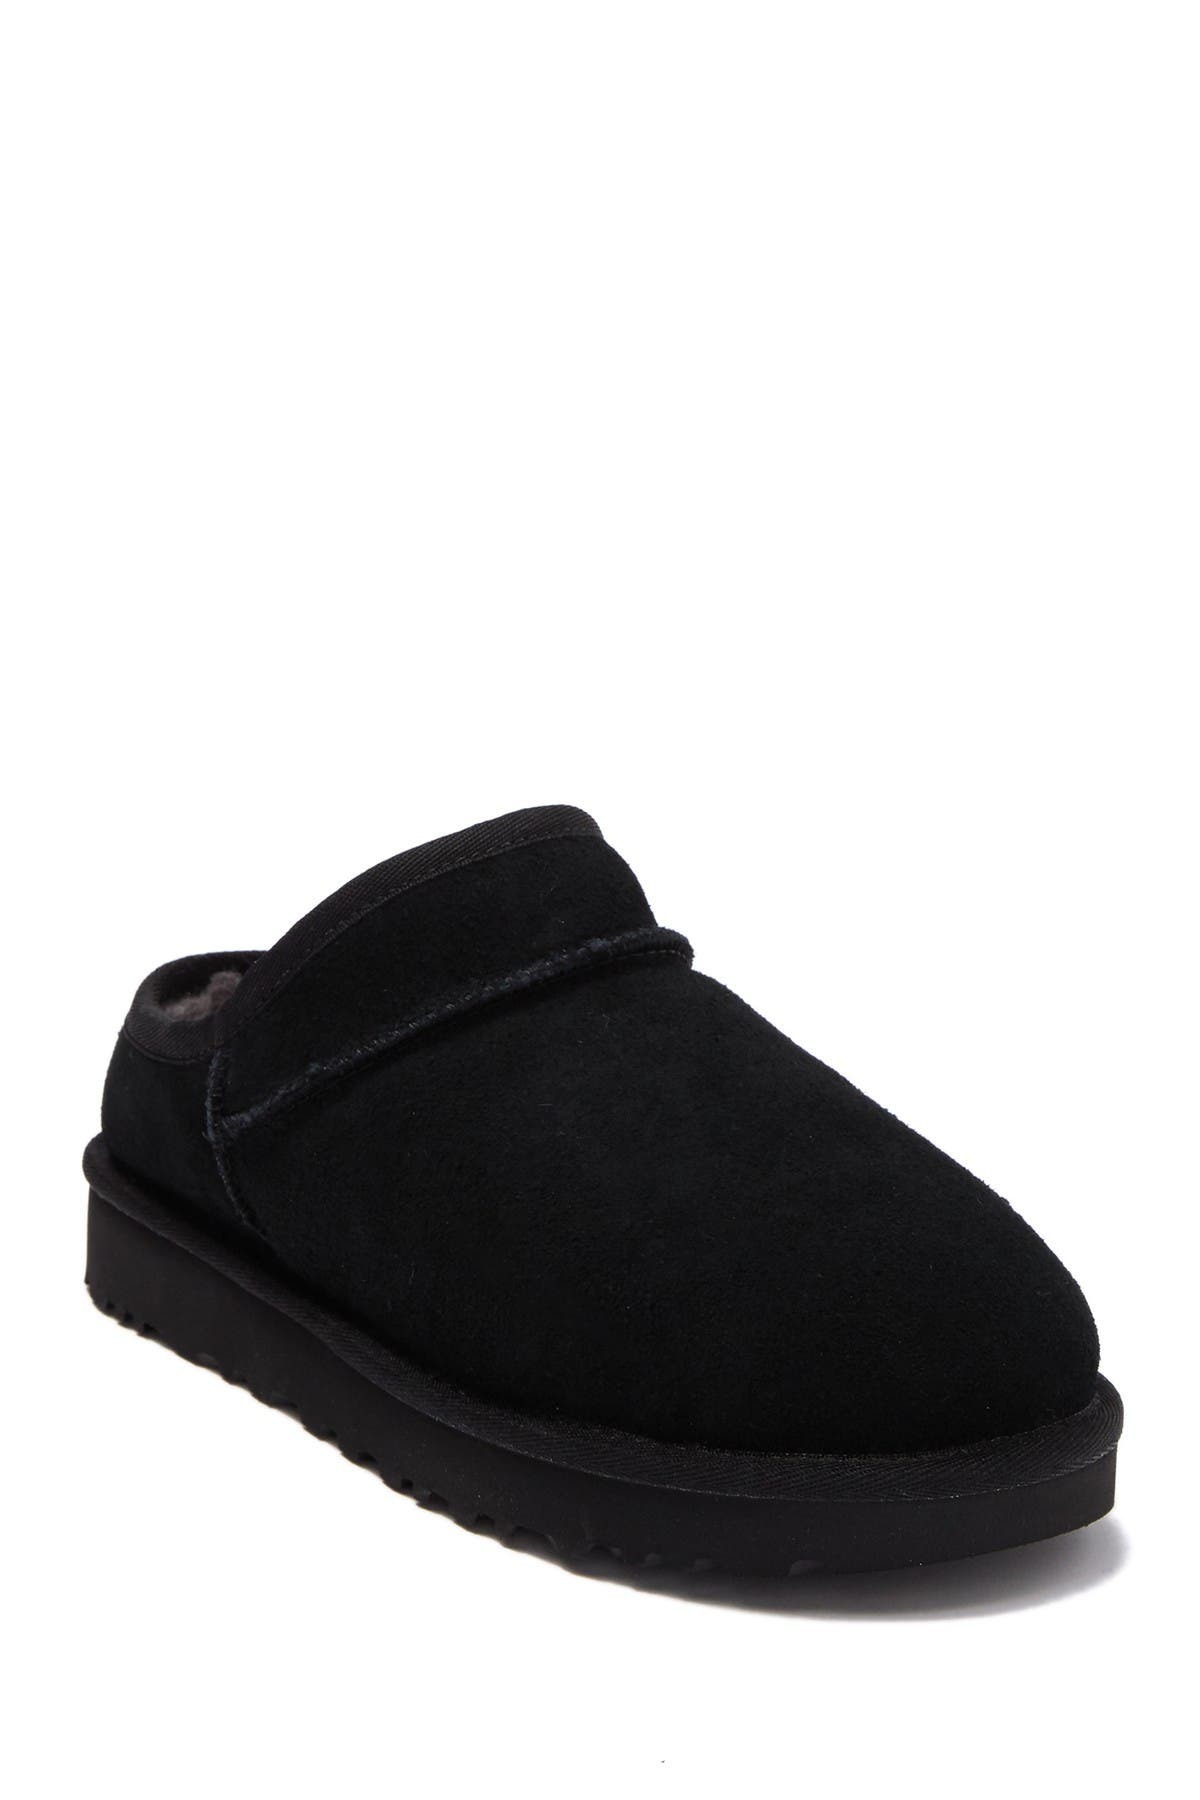 Image of UGG Suede Classic Slipper